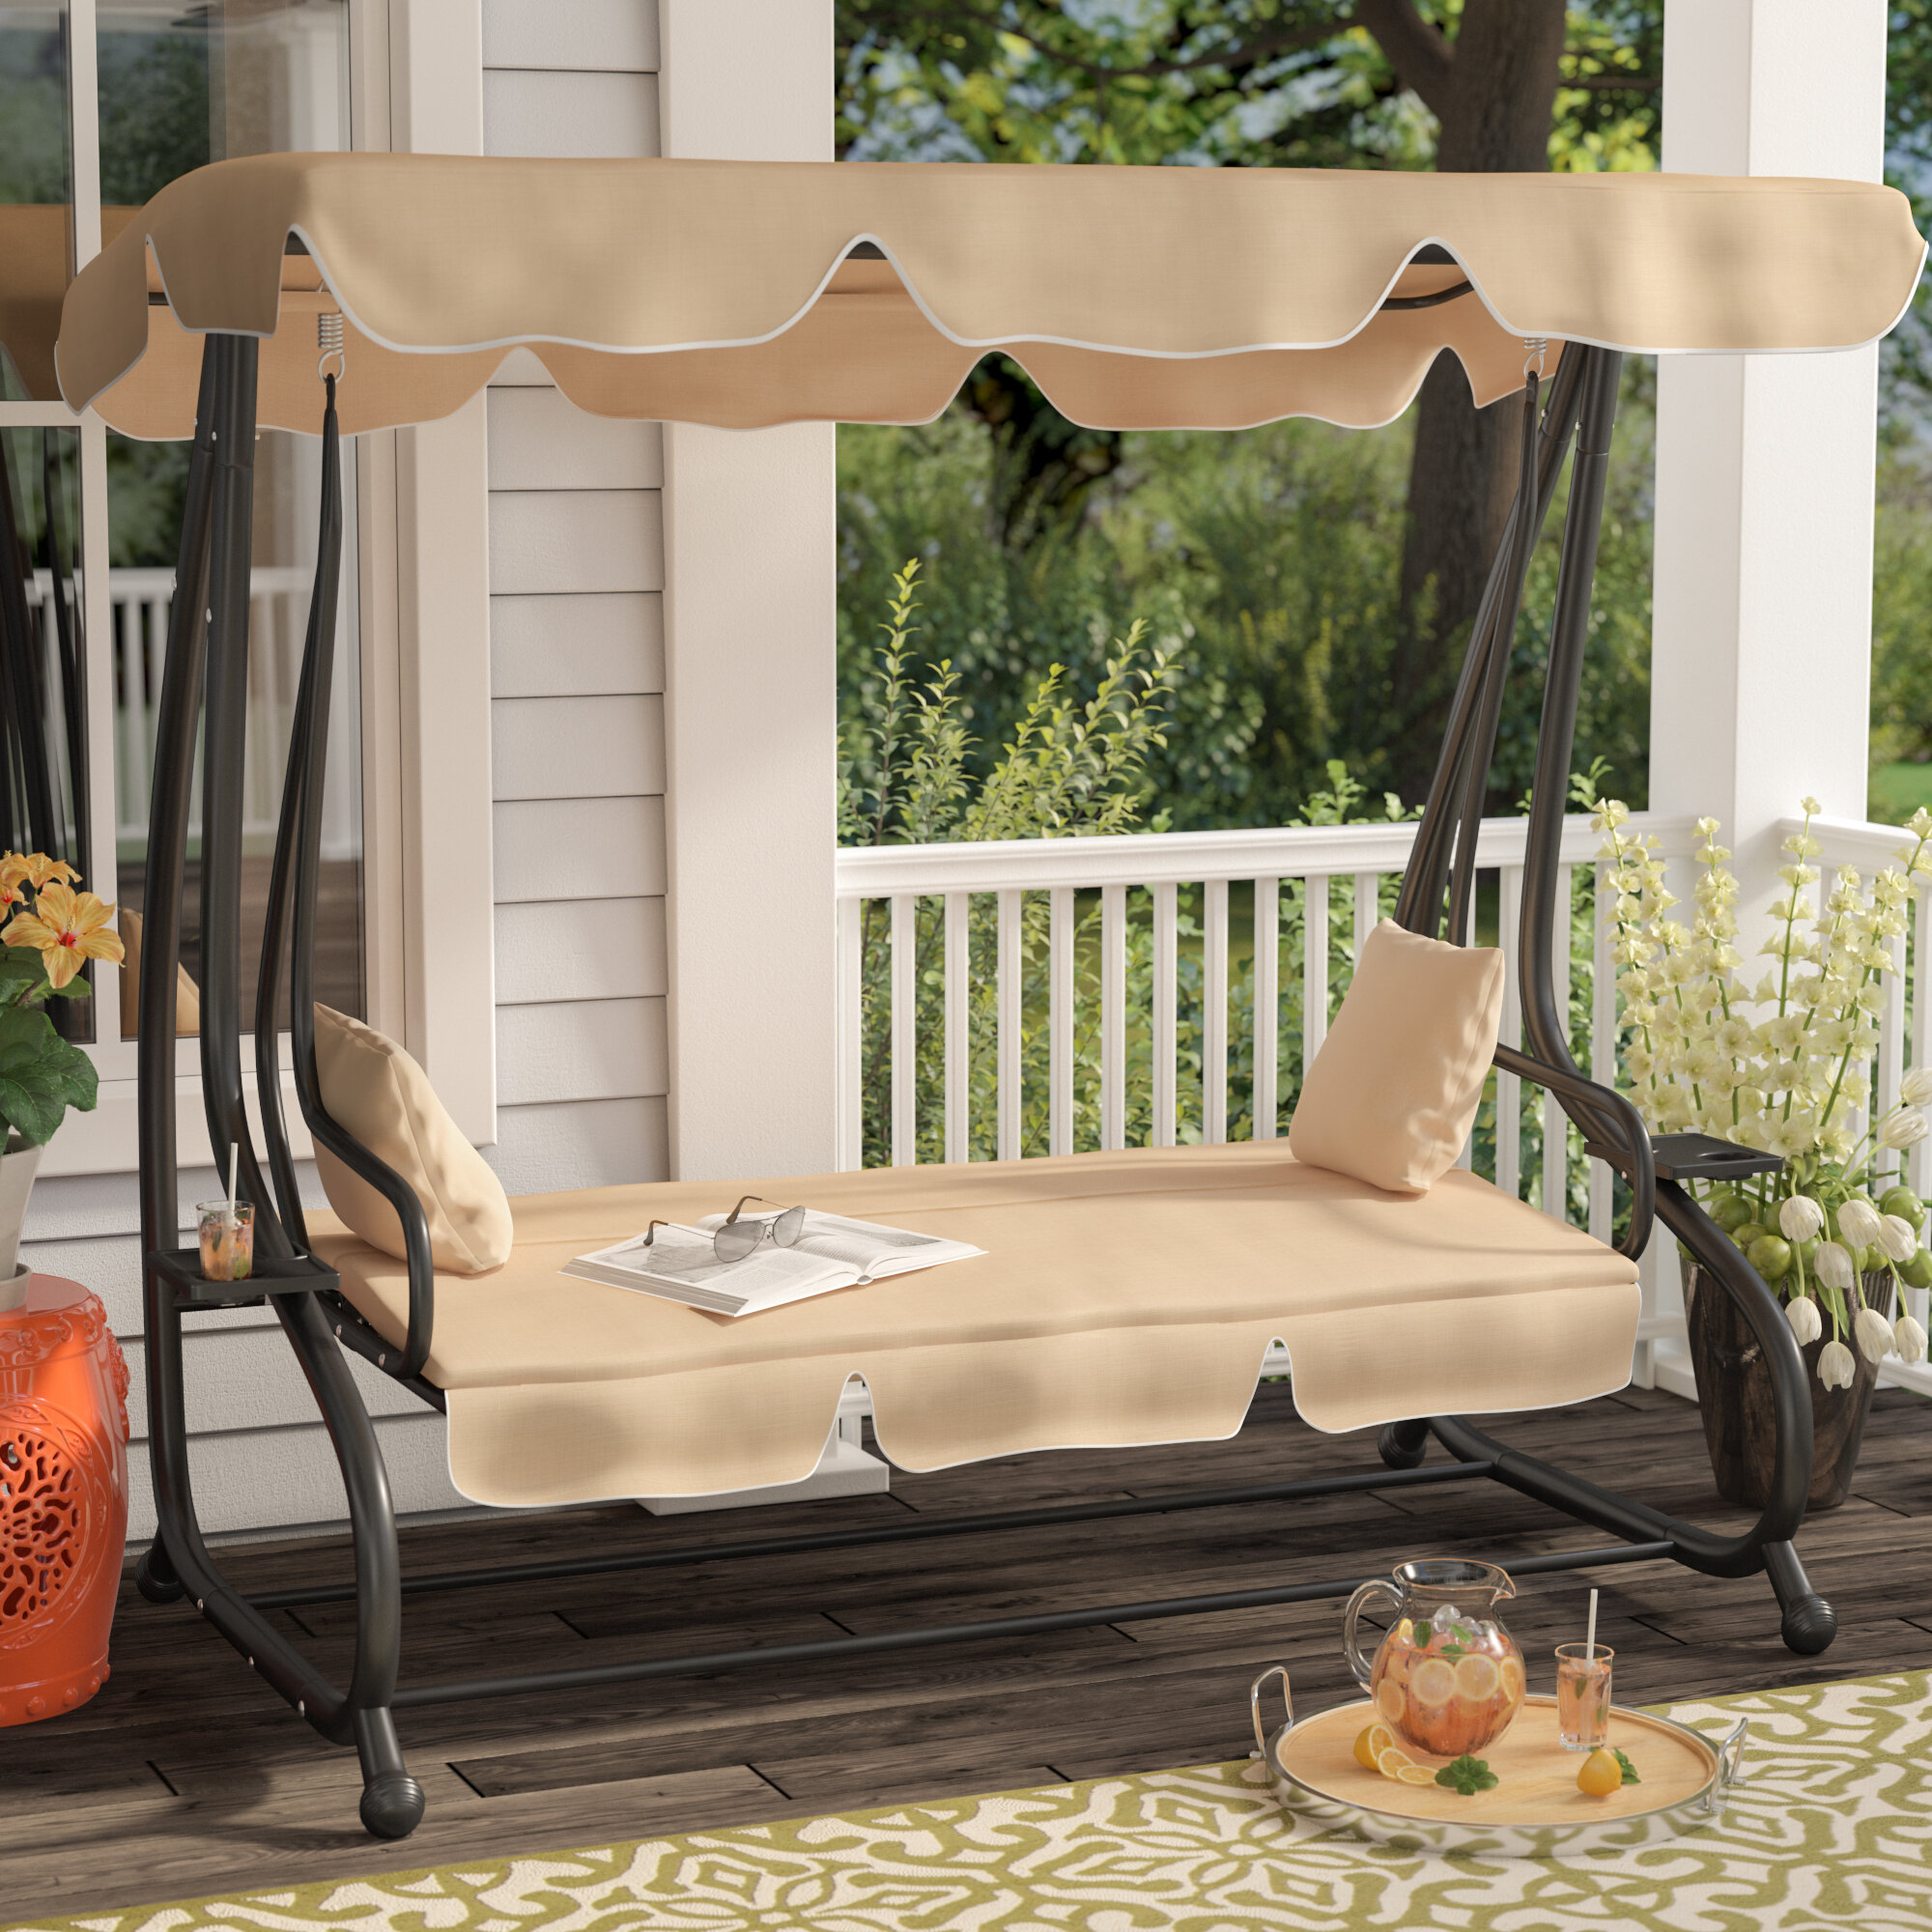 glider of amish plans cedar x outdoor finish stained com crafted photo w free porch garden swing patio amazon gliders esgntv attractive